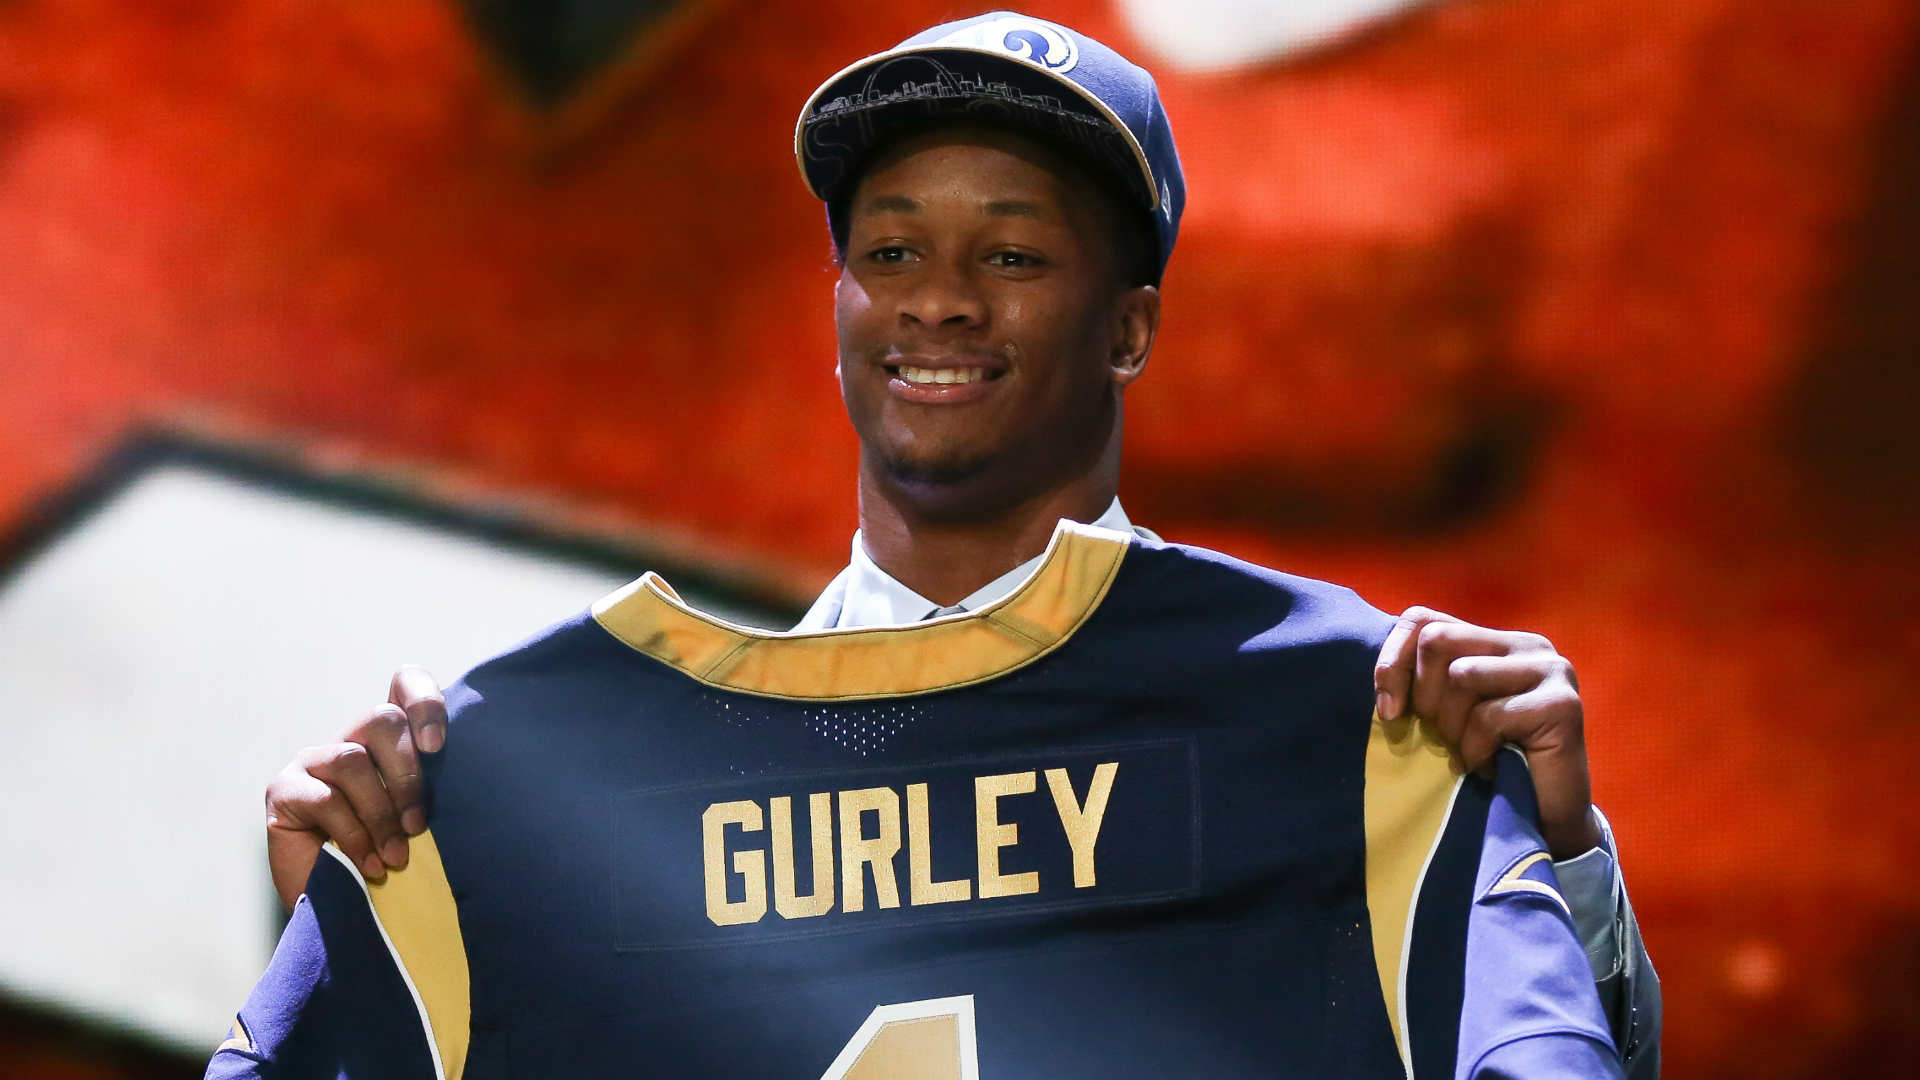 Todd-Gurley-061715-USNews-Getty-FTR